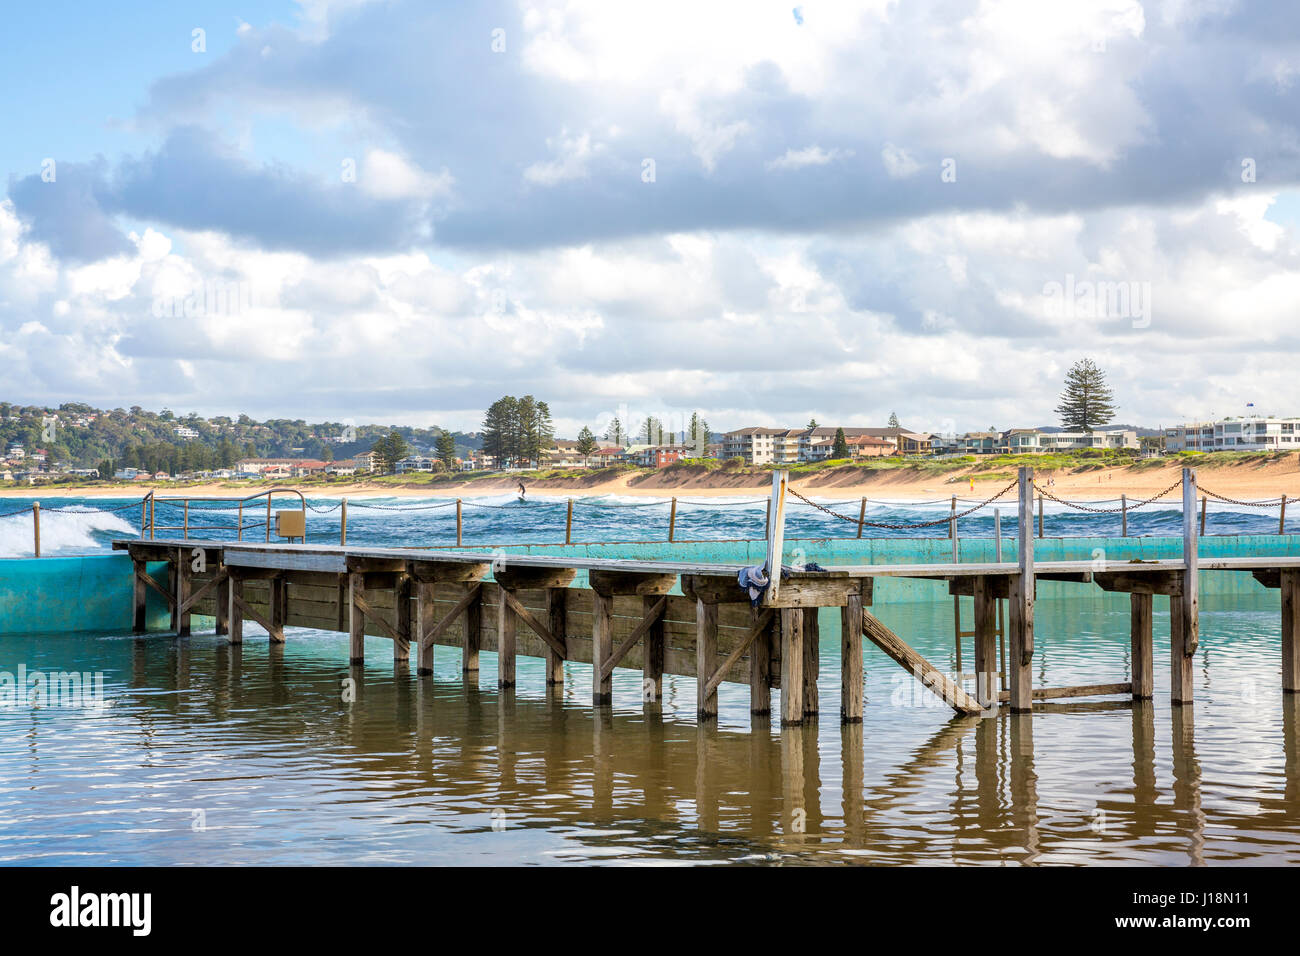 Low tide in north narrabeen beach rock pool sydneyaustralia low tide in north narrabeen beach rock pool sydneyaustralia nvjuhfo Gallery